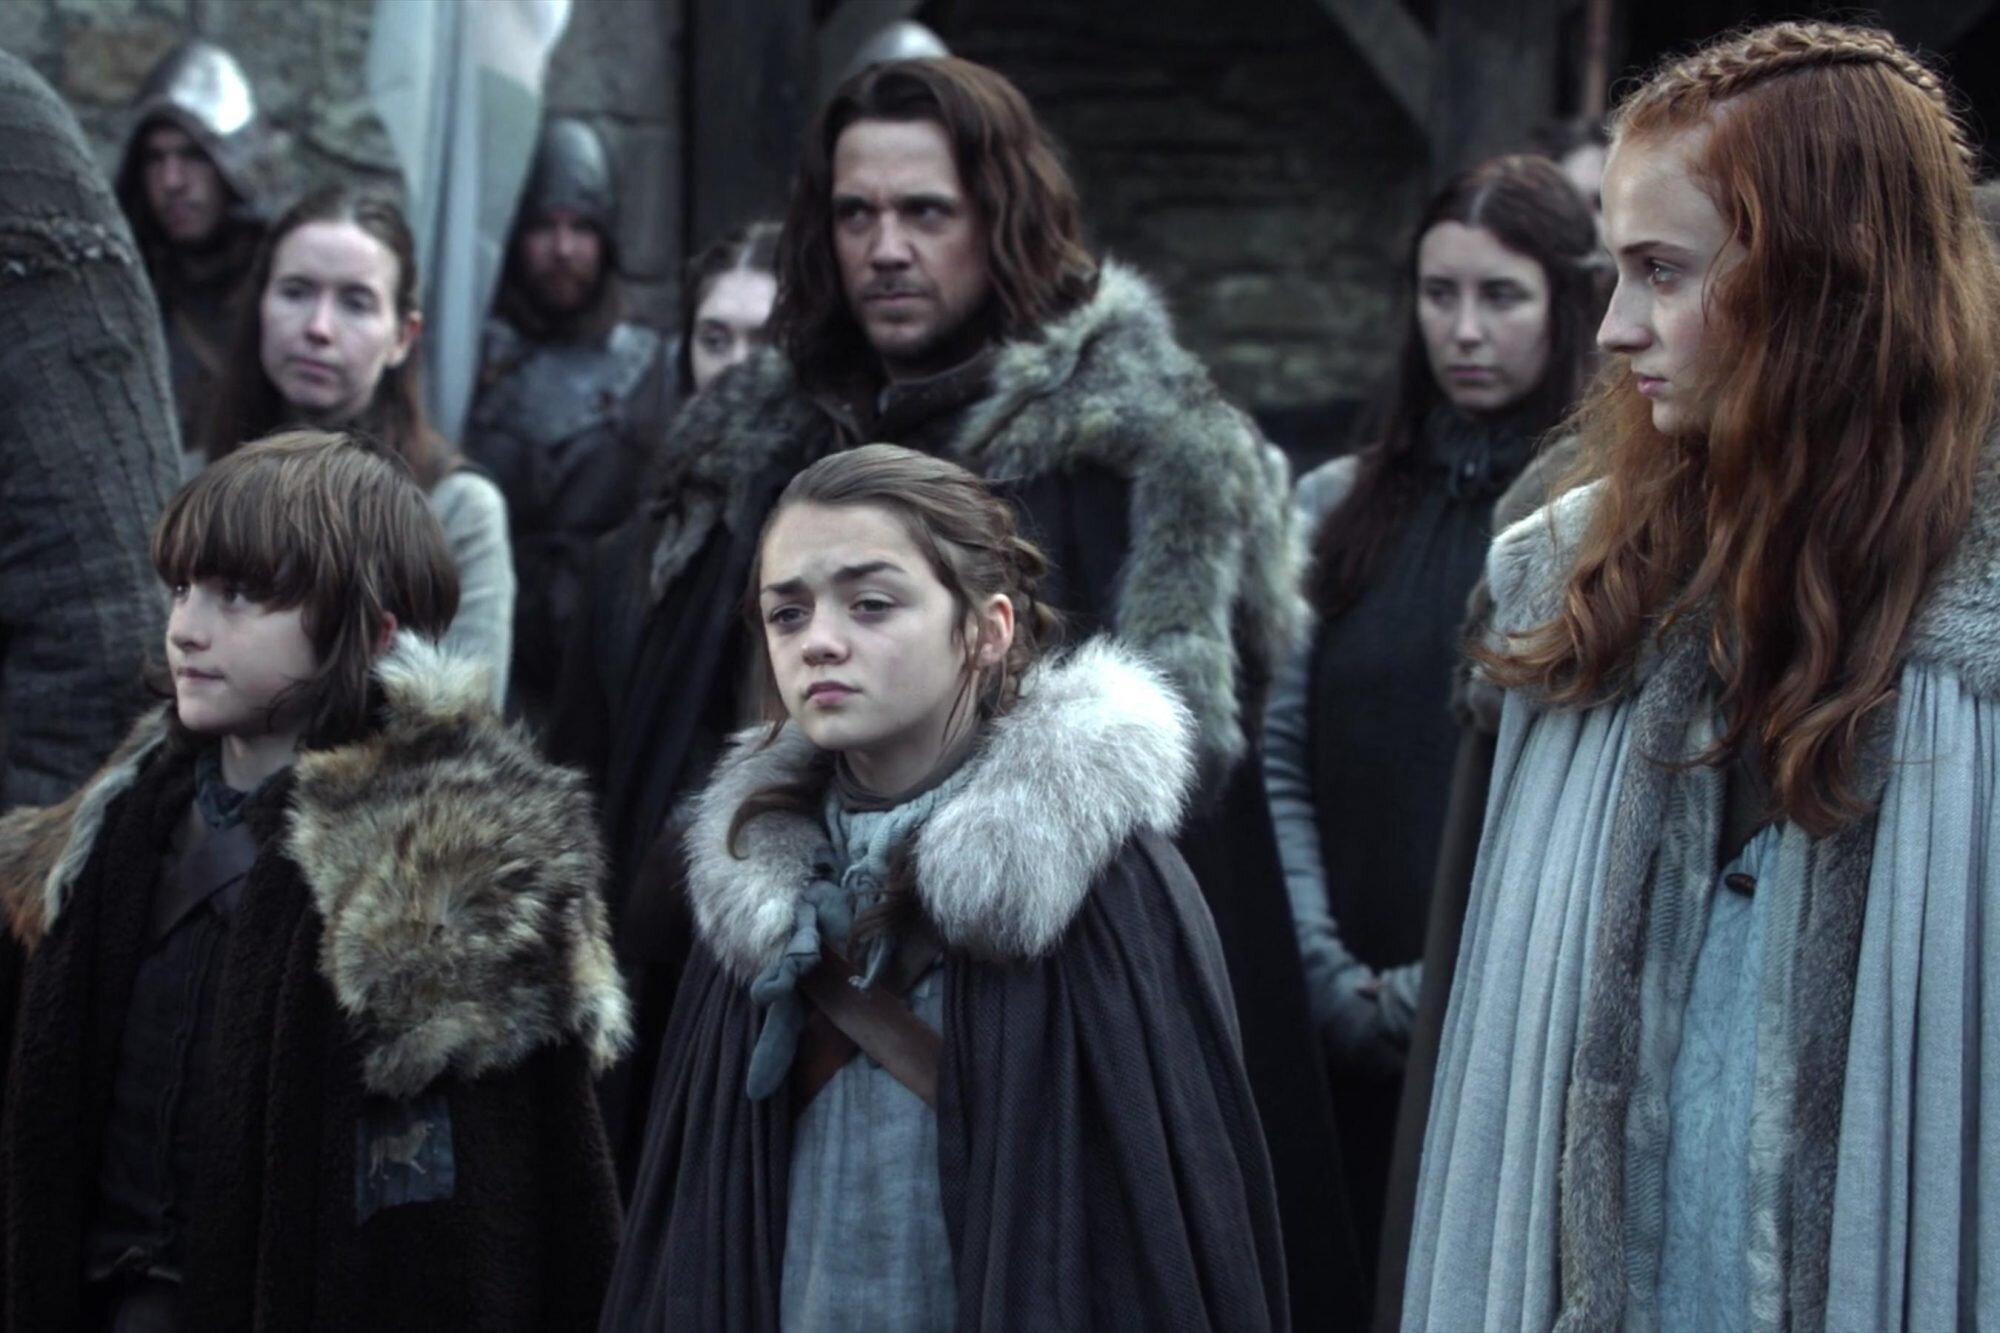 Game of Thrones stars freak out over embarrassing season 1 footage | EW.com